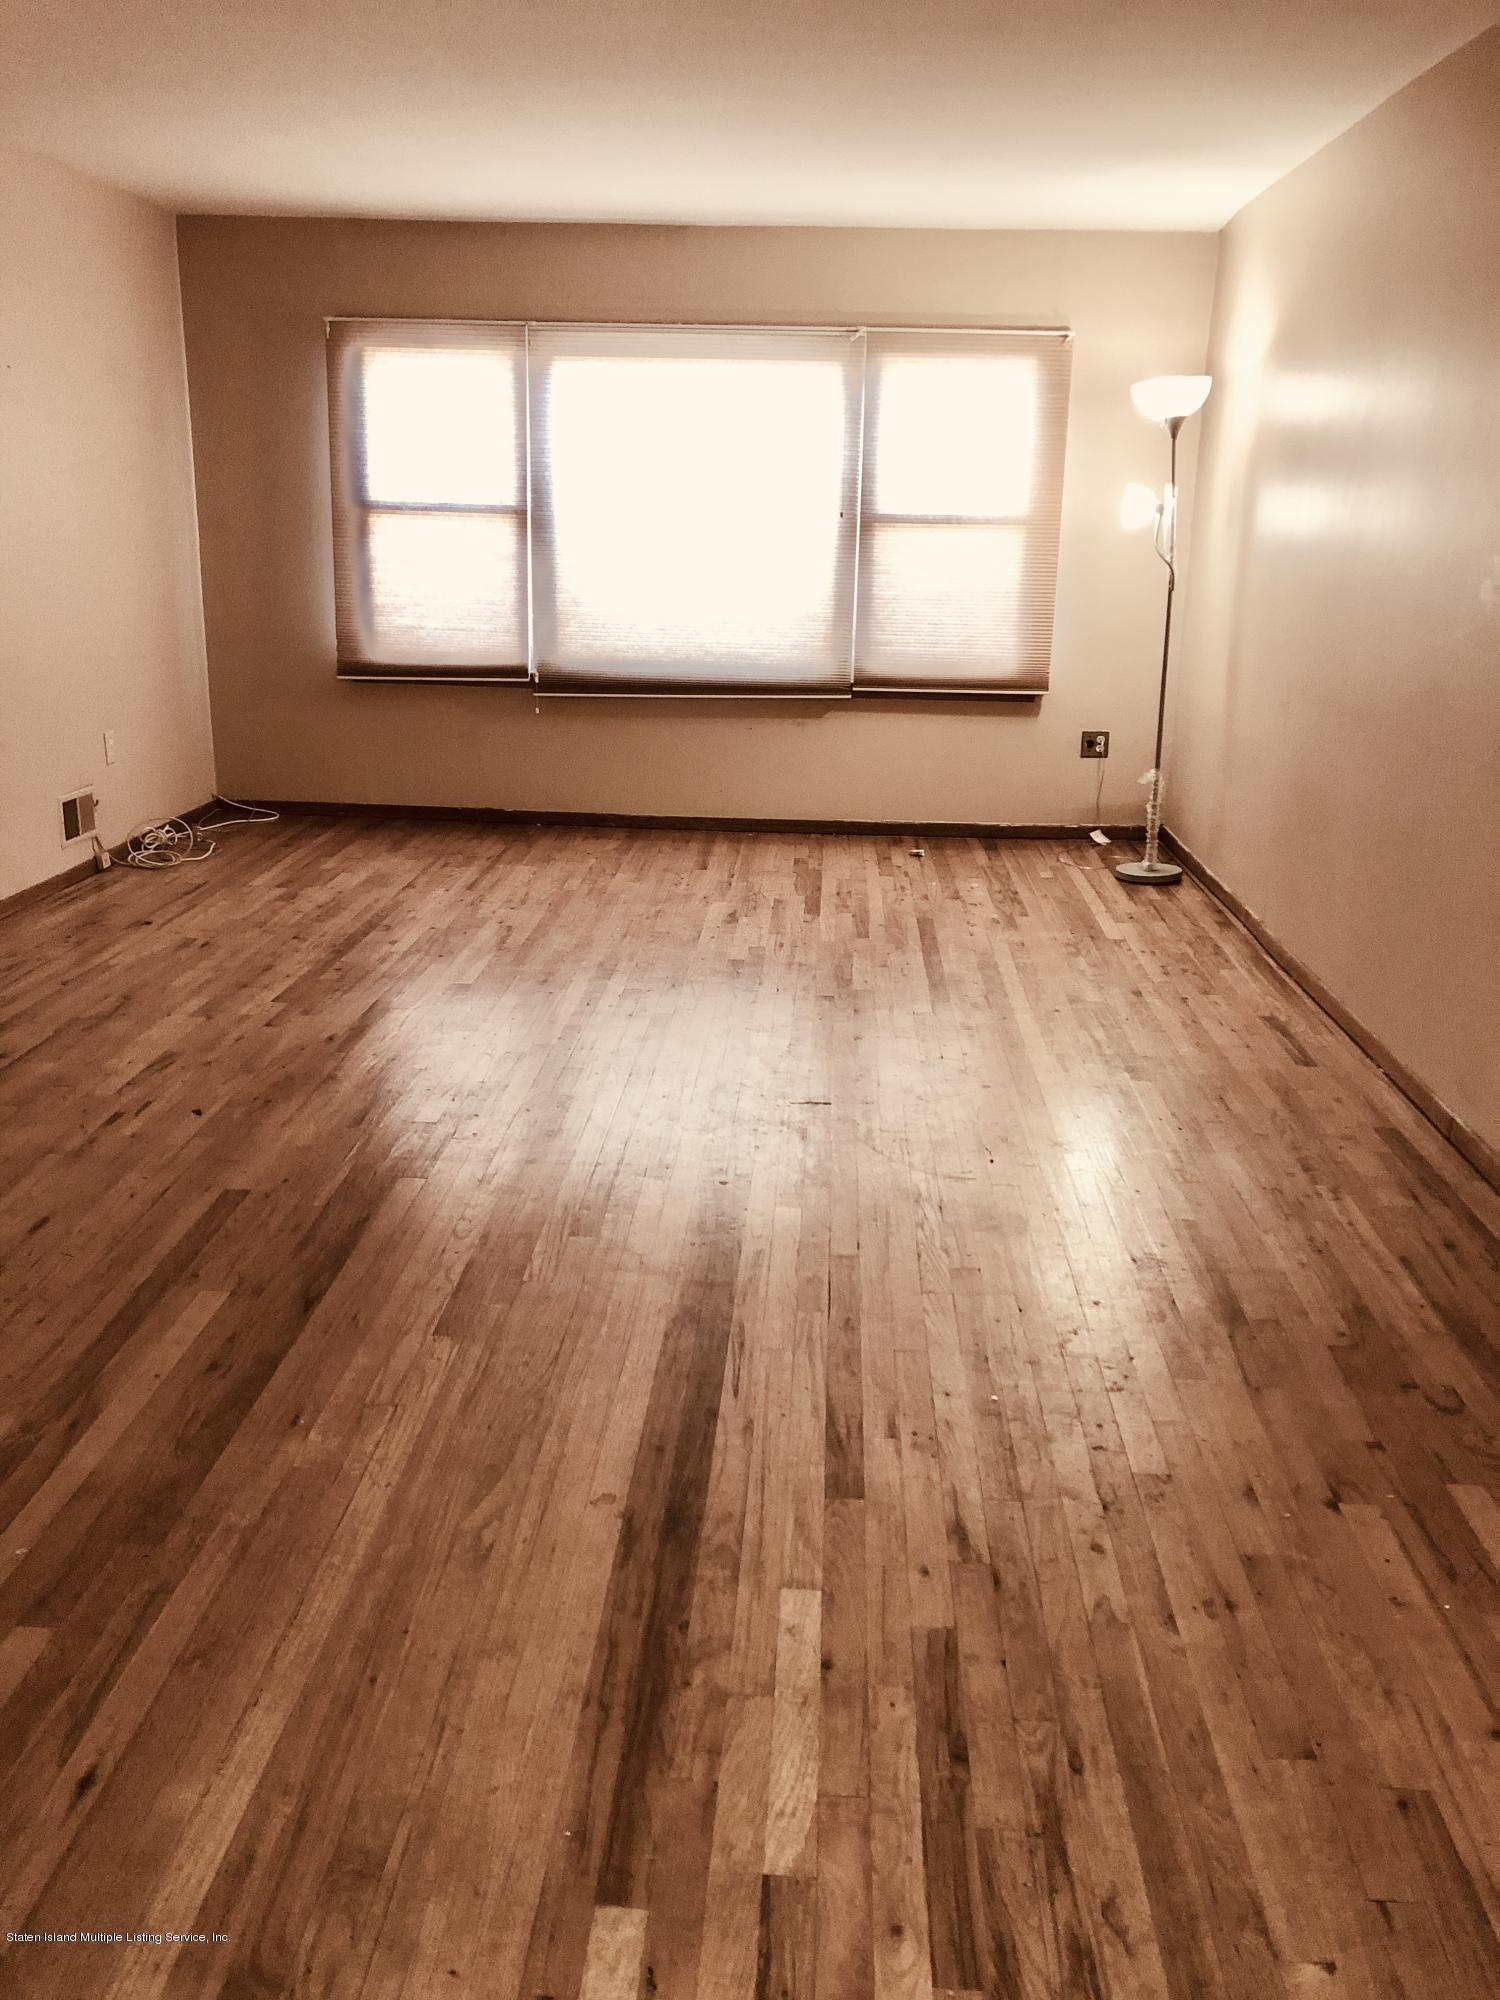 573 Armstrong Avenue,Staten Island,New York,10308,United States,3 Bedrooms Bedrooms,6 Rooms Rooms,2 BathroomsBathrooms,Res-Rental,Armstrong,1135394